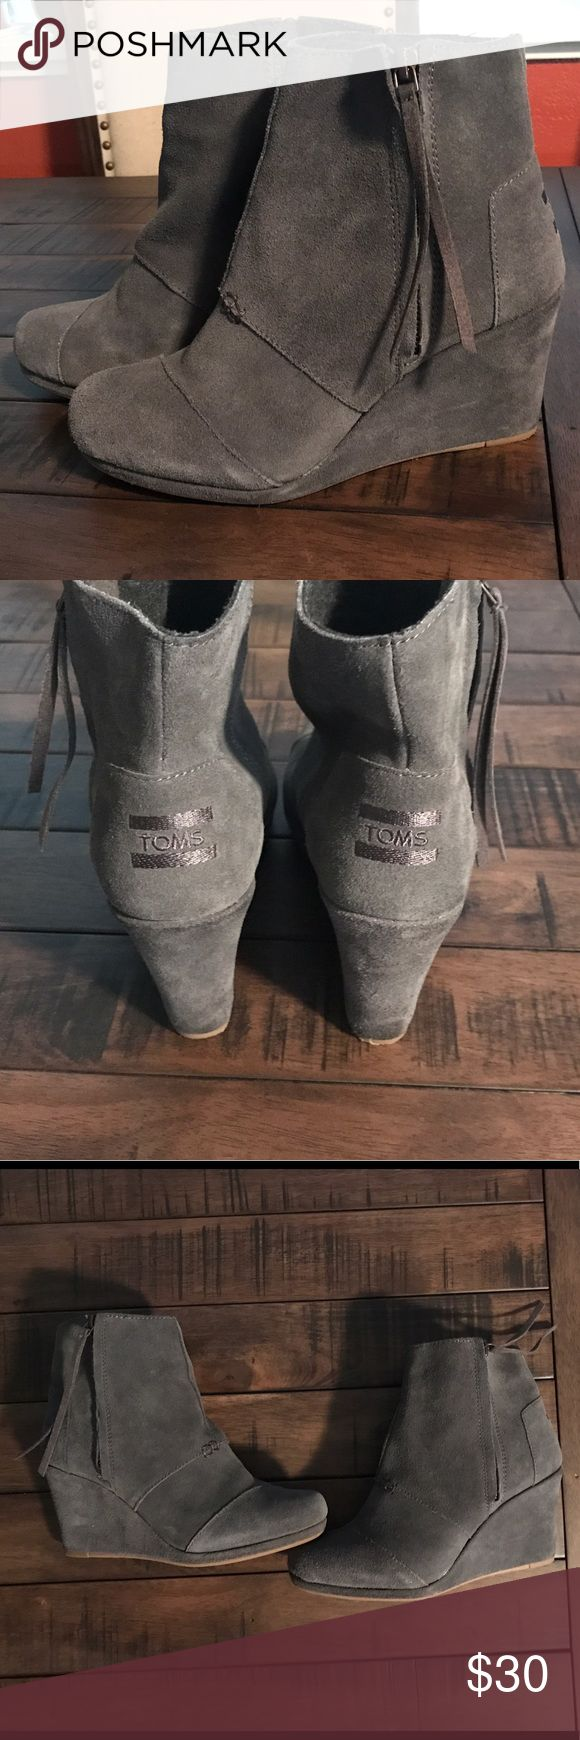 TOMS Desert Wedge High Dark Grey Suede Dark grey suede wedges. Size 8.5 only worn a few times, in great shape. TOMS Shoes Wedges